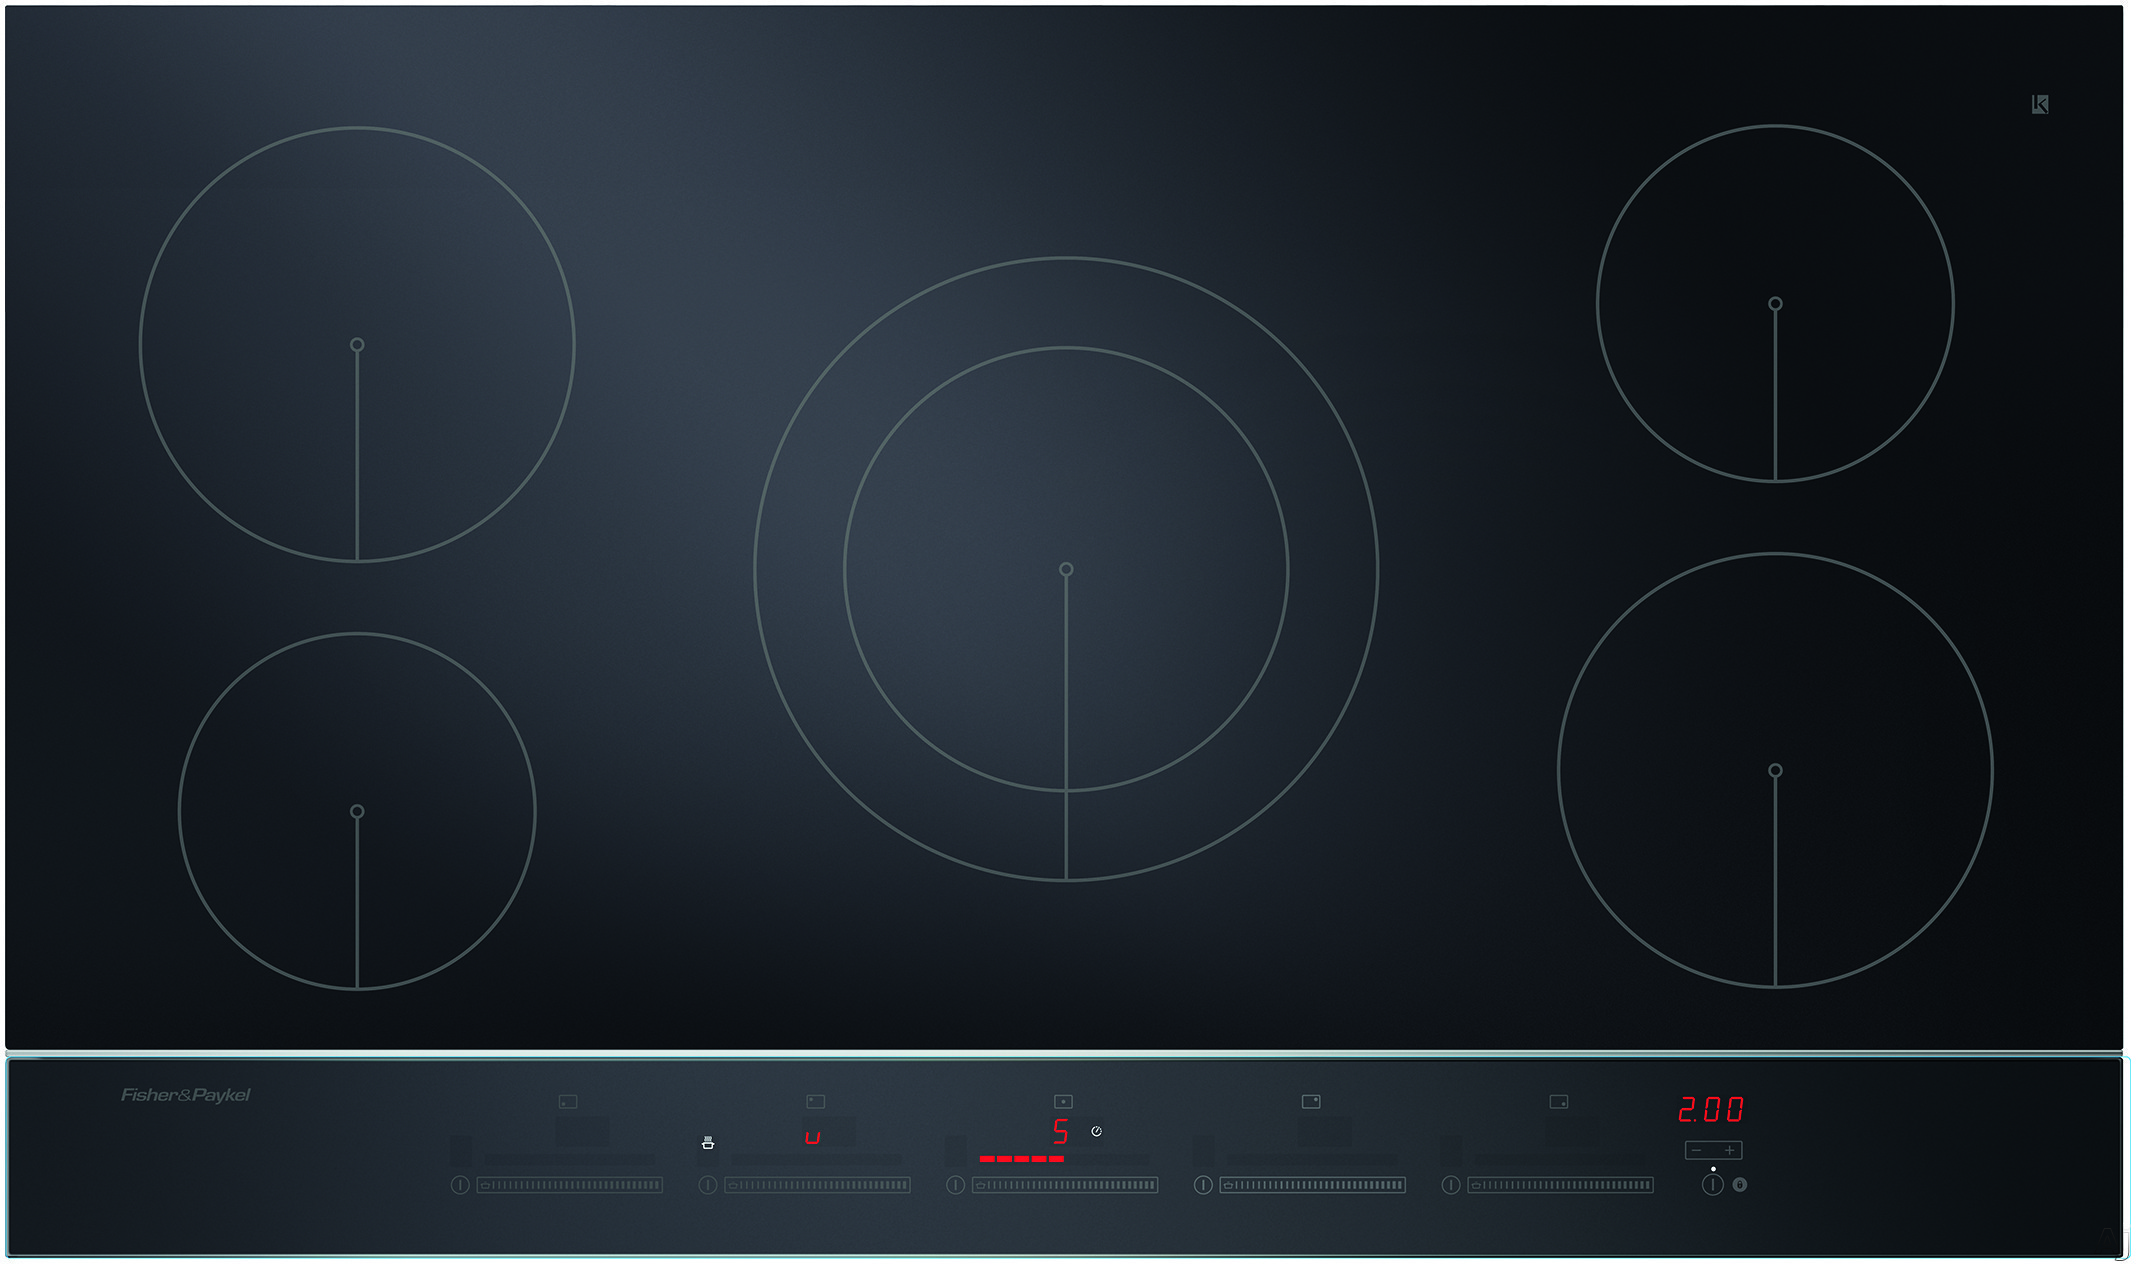 Fisher & Paykel CI365DTB2 36 Inch Electric Induction Cooktop with 5 Cooking Zones, PowerBoost with up to 5500W Output, Black Ceramic Glass, Hot Surface Indicator, Spillage Auto-Off, Minute Timer and Touch & Slide Controls